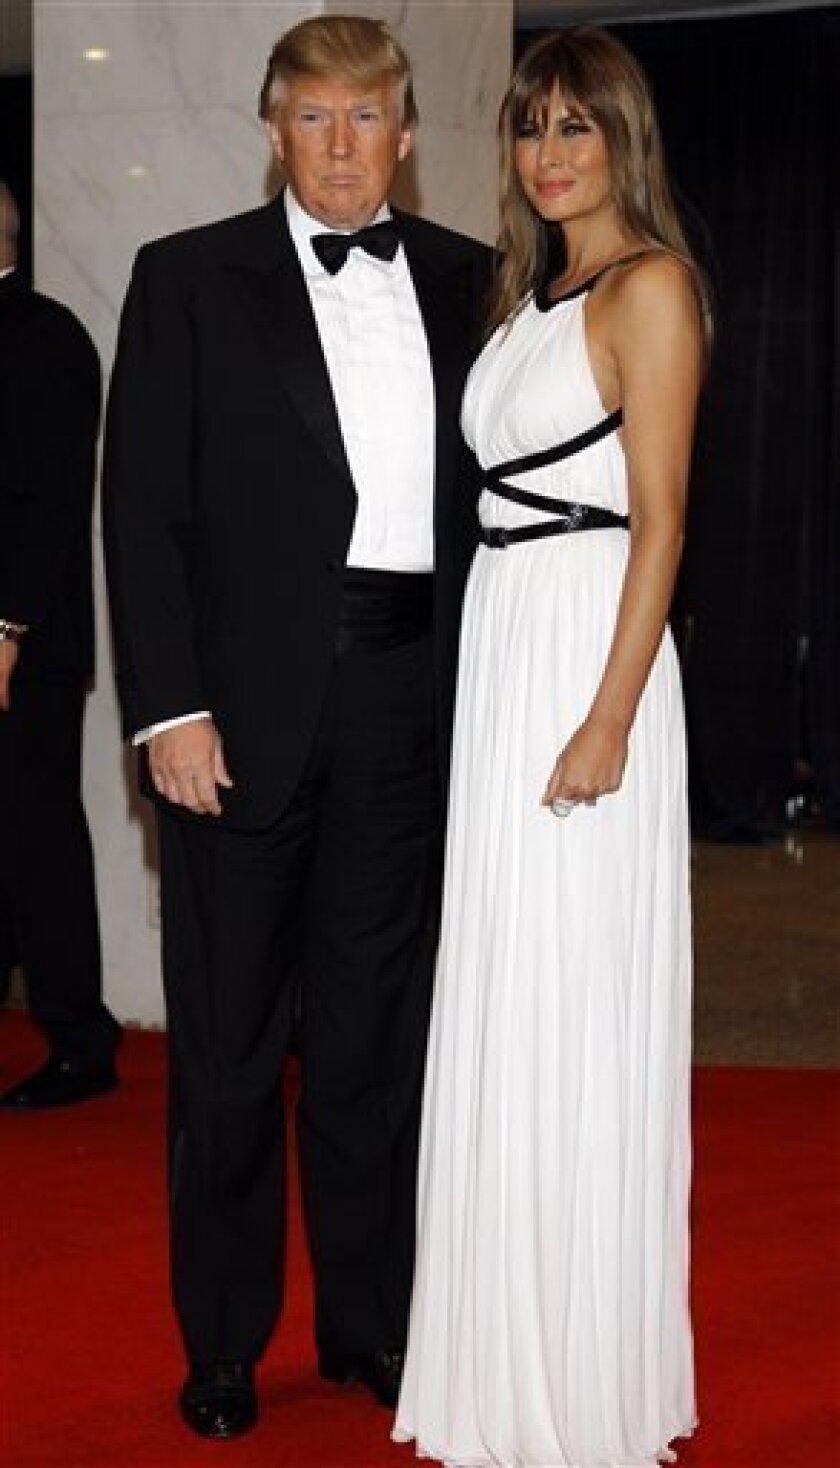 Donald Trump and his wife Melania Trump arrive for the White House Correspondents Dinner Saturday, April 30, 2011 in Washington.(AP Photo/Alex Brandon)